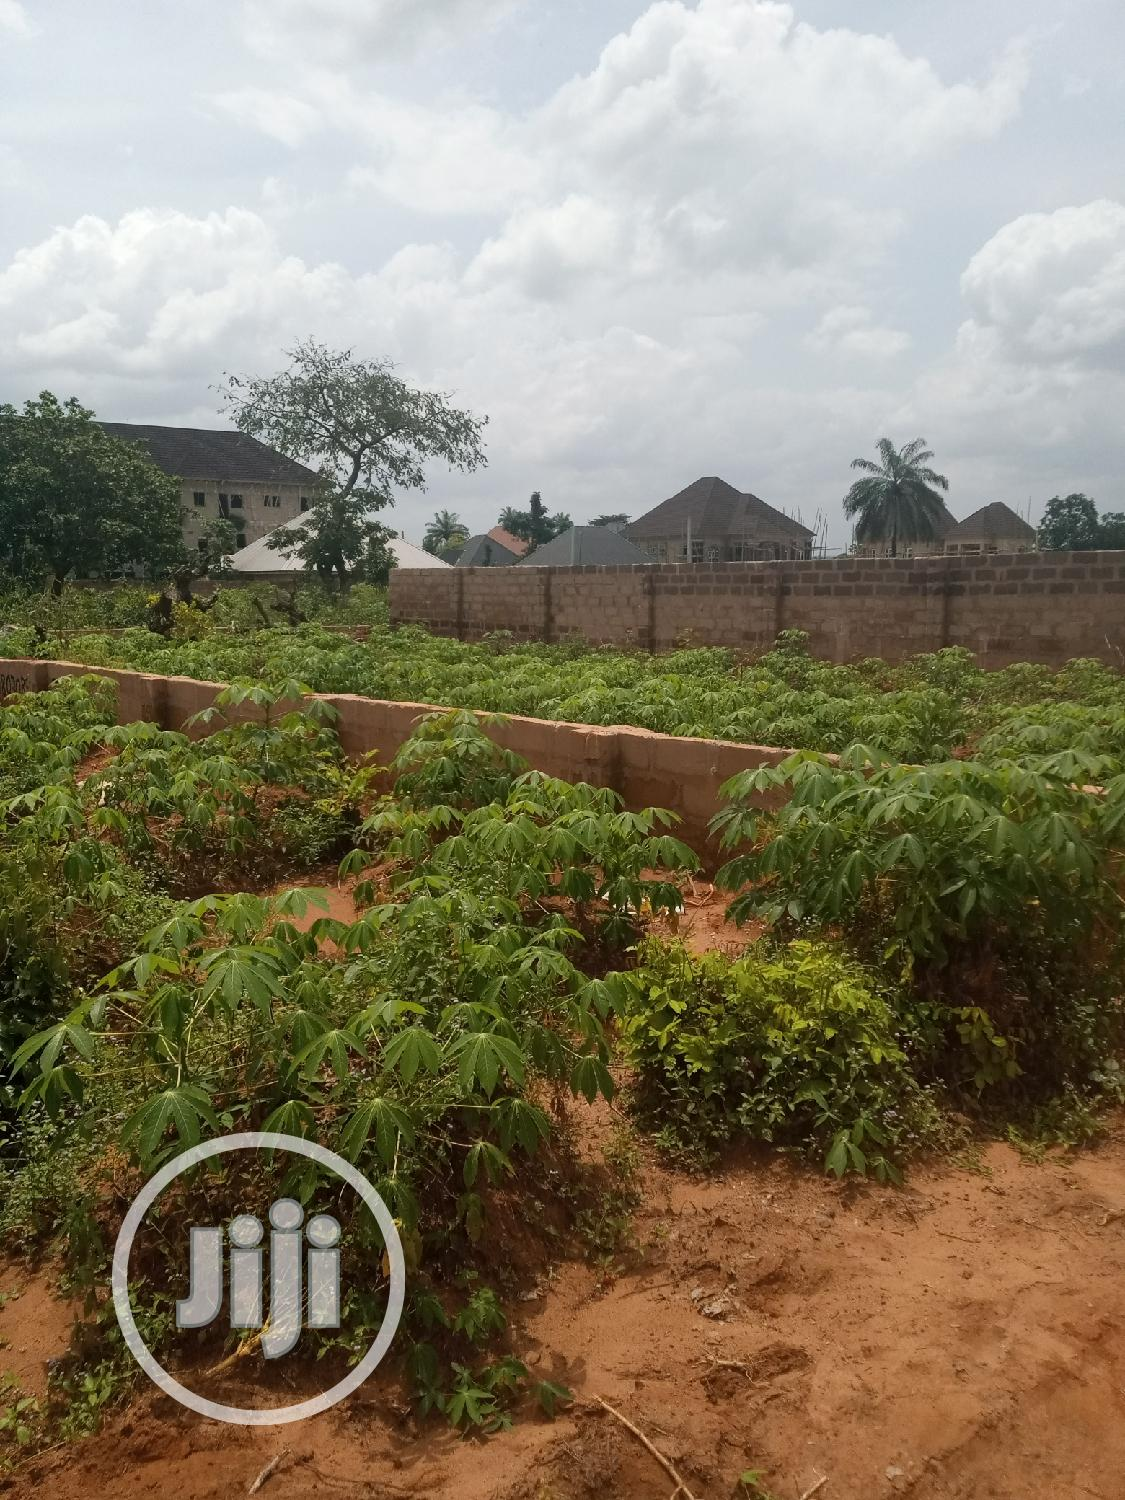 1 Plot Of Land In Isu Awka, Anambra State For Sale | Land & Plots For Sale for sale in Awka, Anambra State, Nigeria